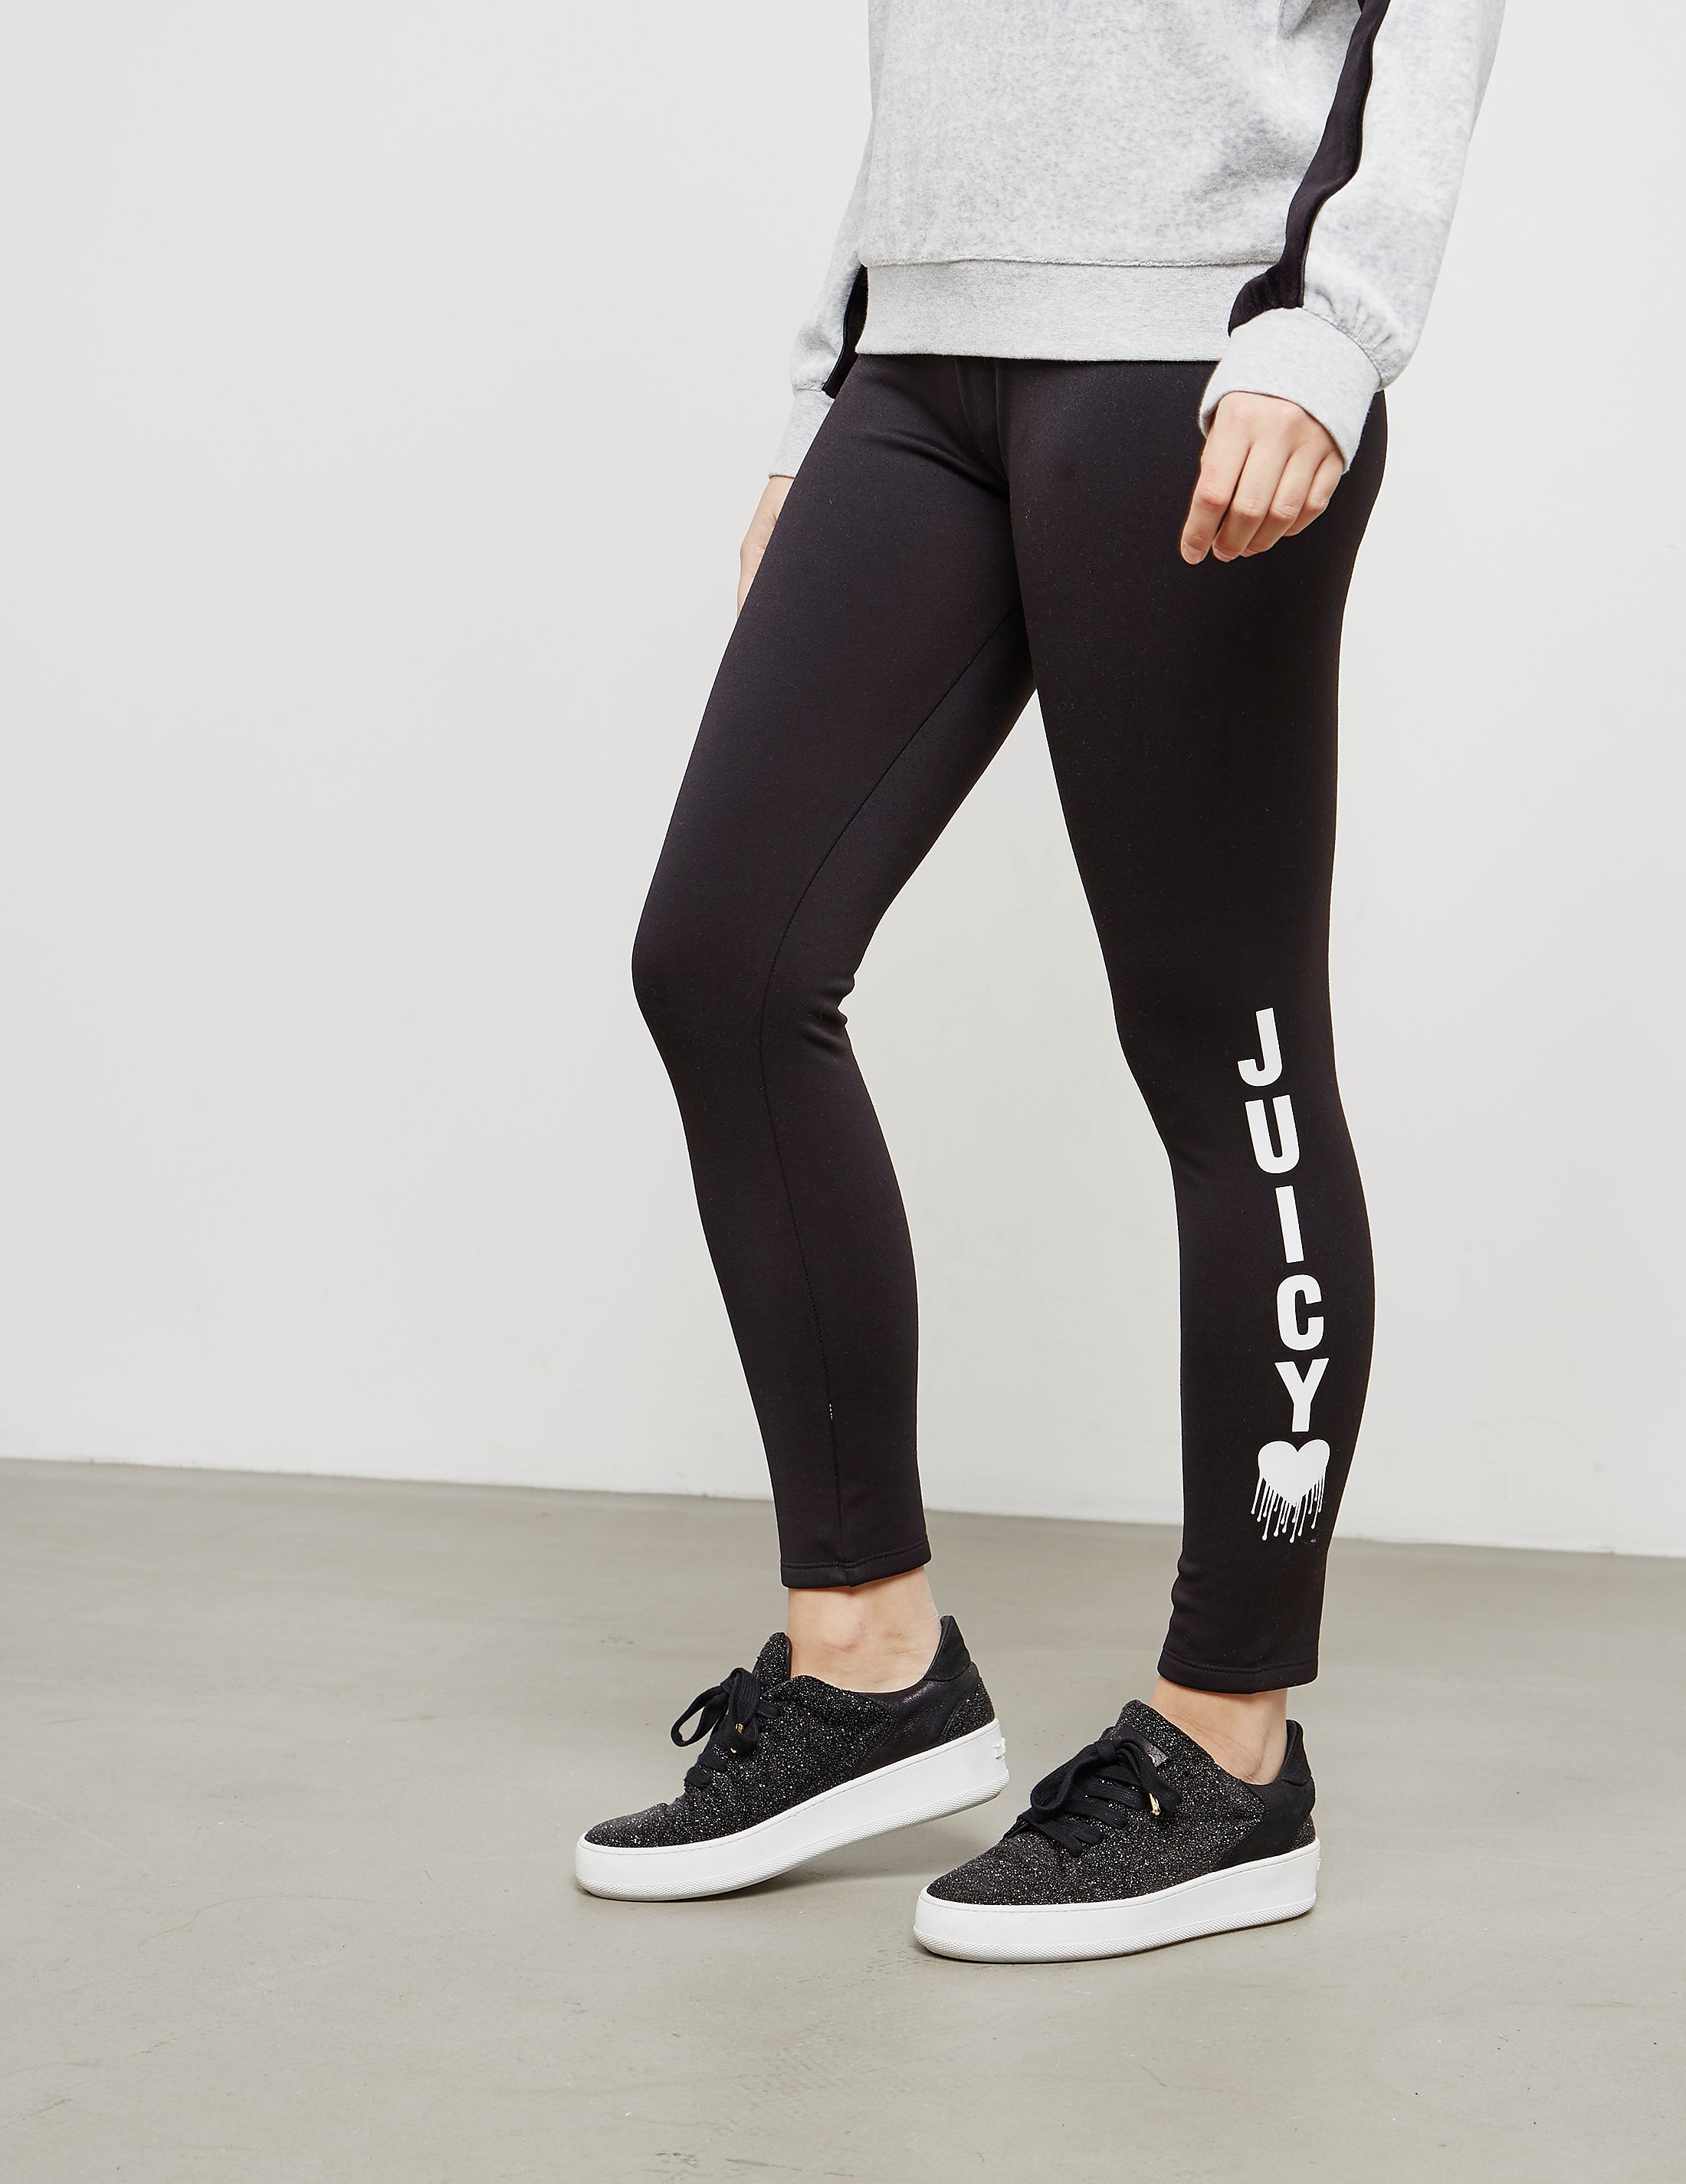 Juicy Couture Heart Leggings